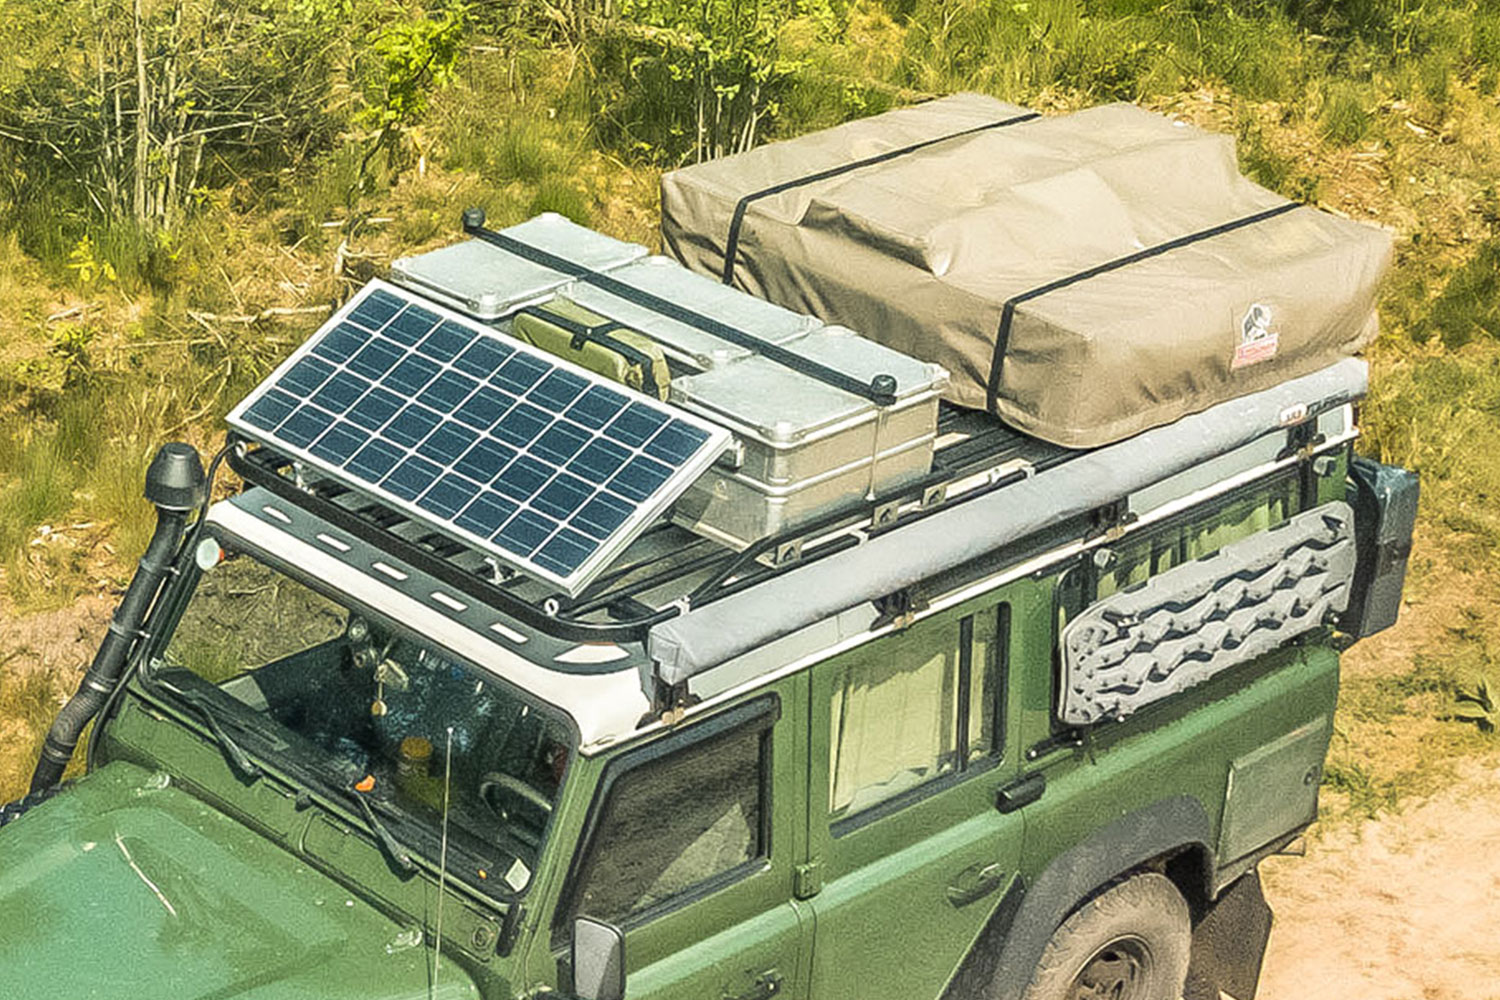 Tembo 4x4 Defender 110 roof rack review